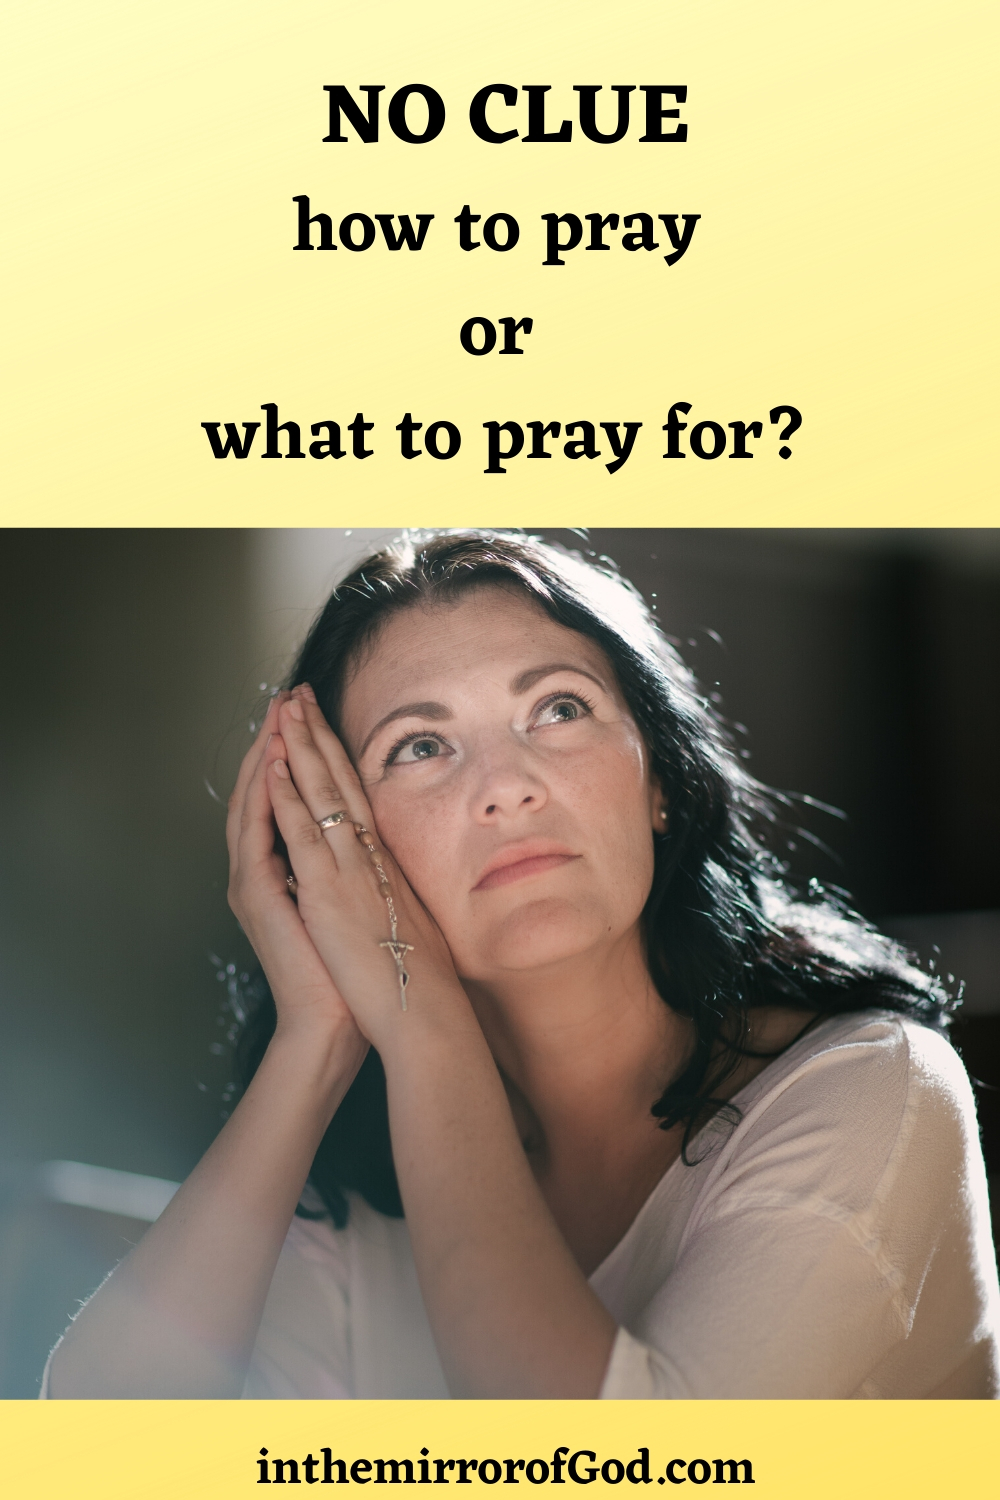 How to Pray – According to the Bible